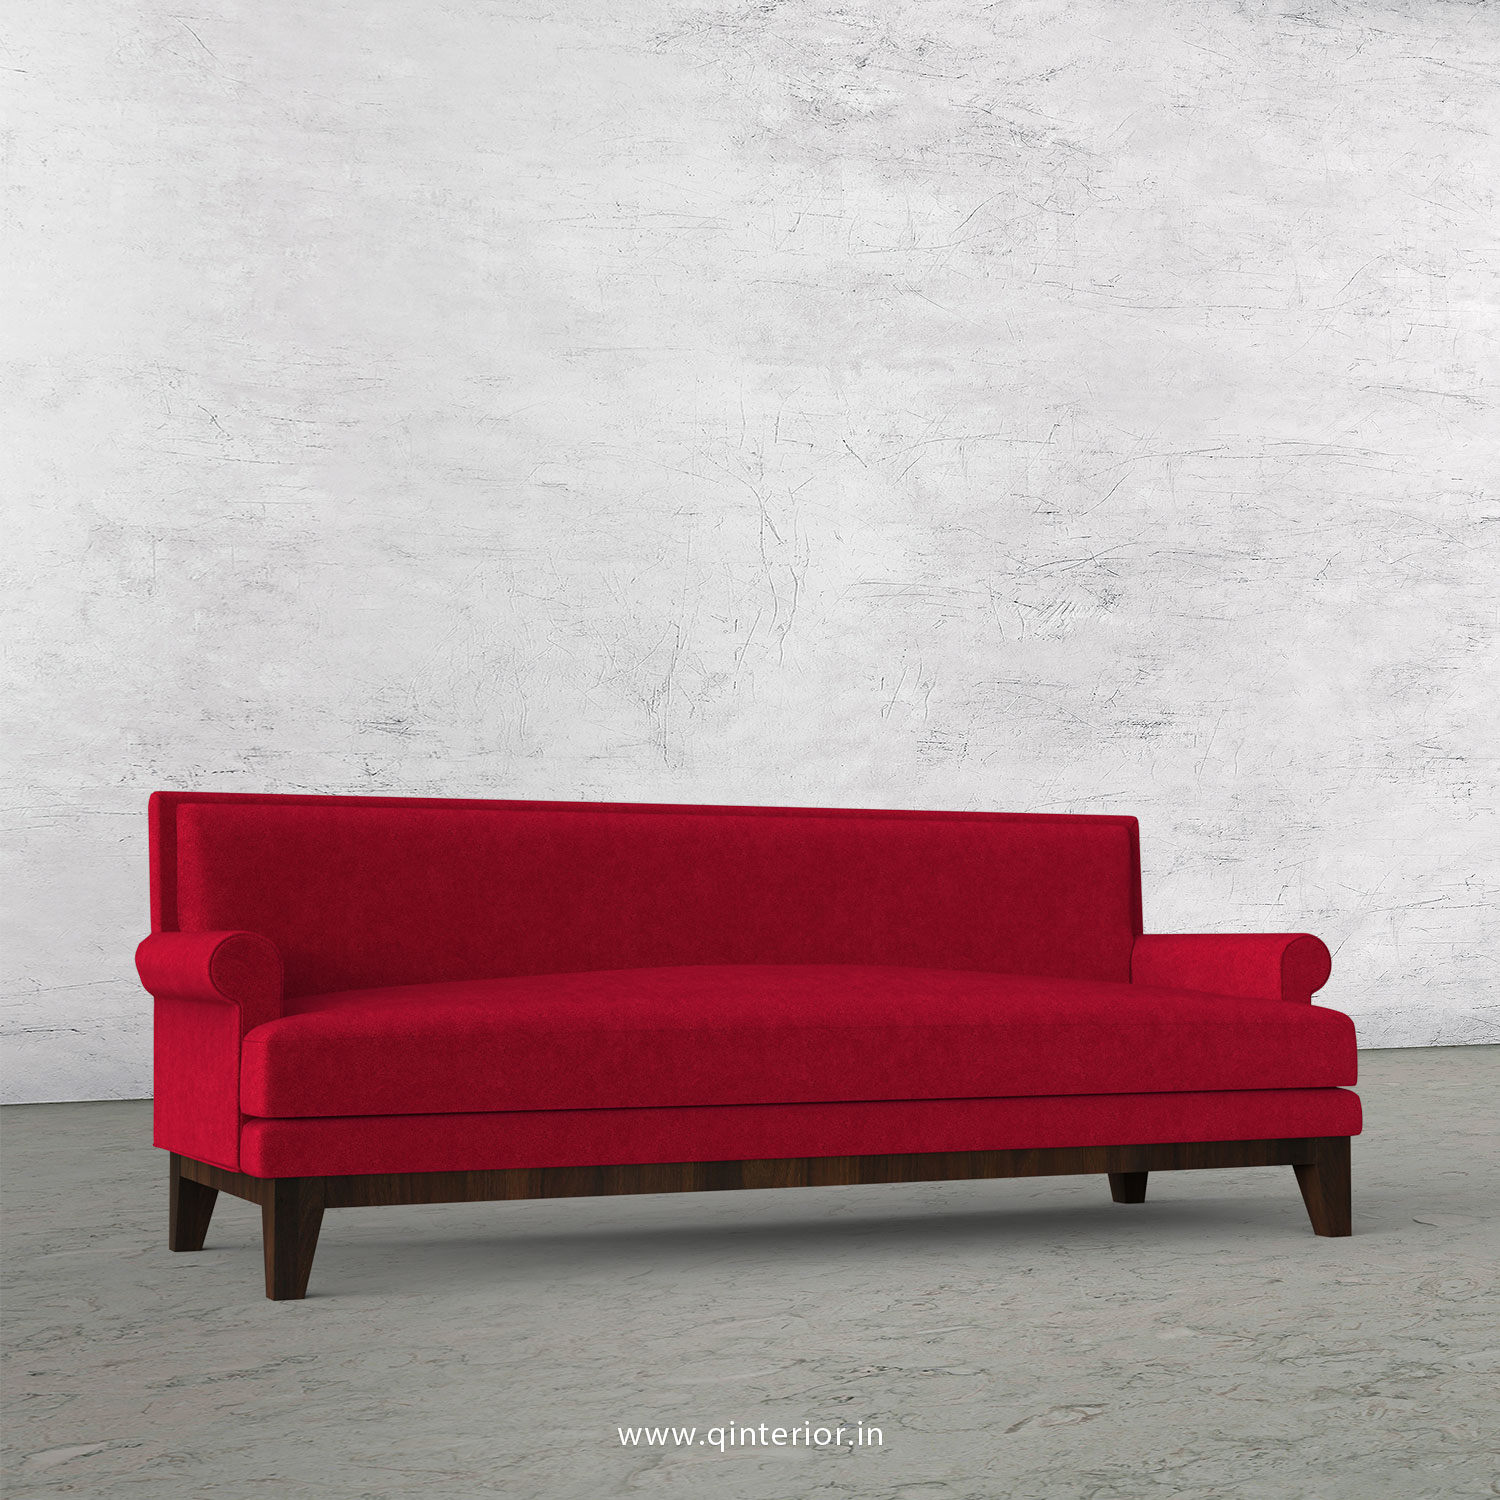 Aviana 3 Seater Sofa in Velvet Fabric - SFA001 VL08